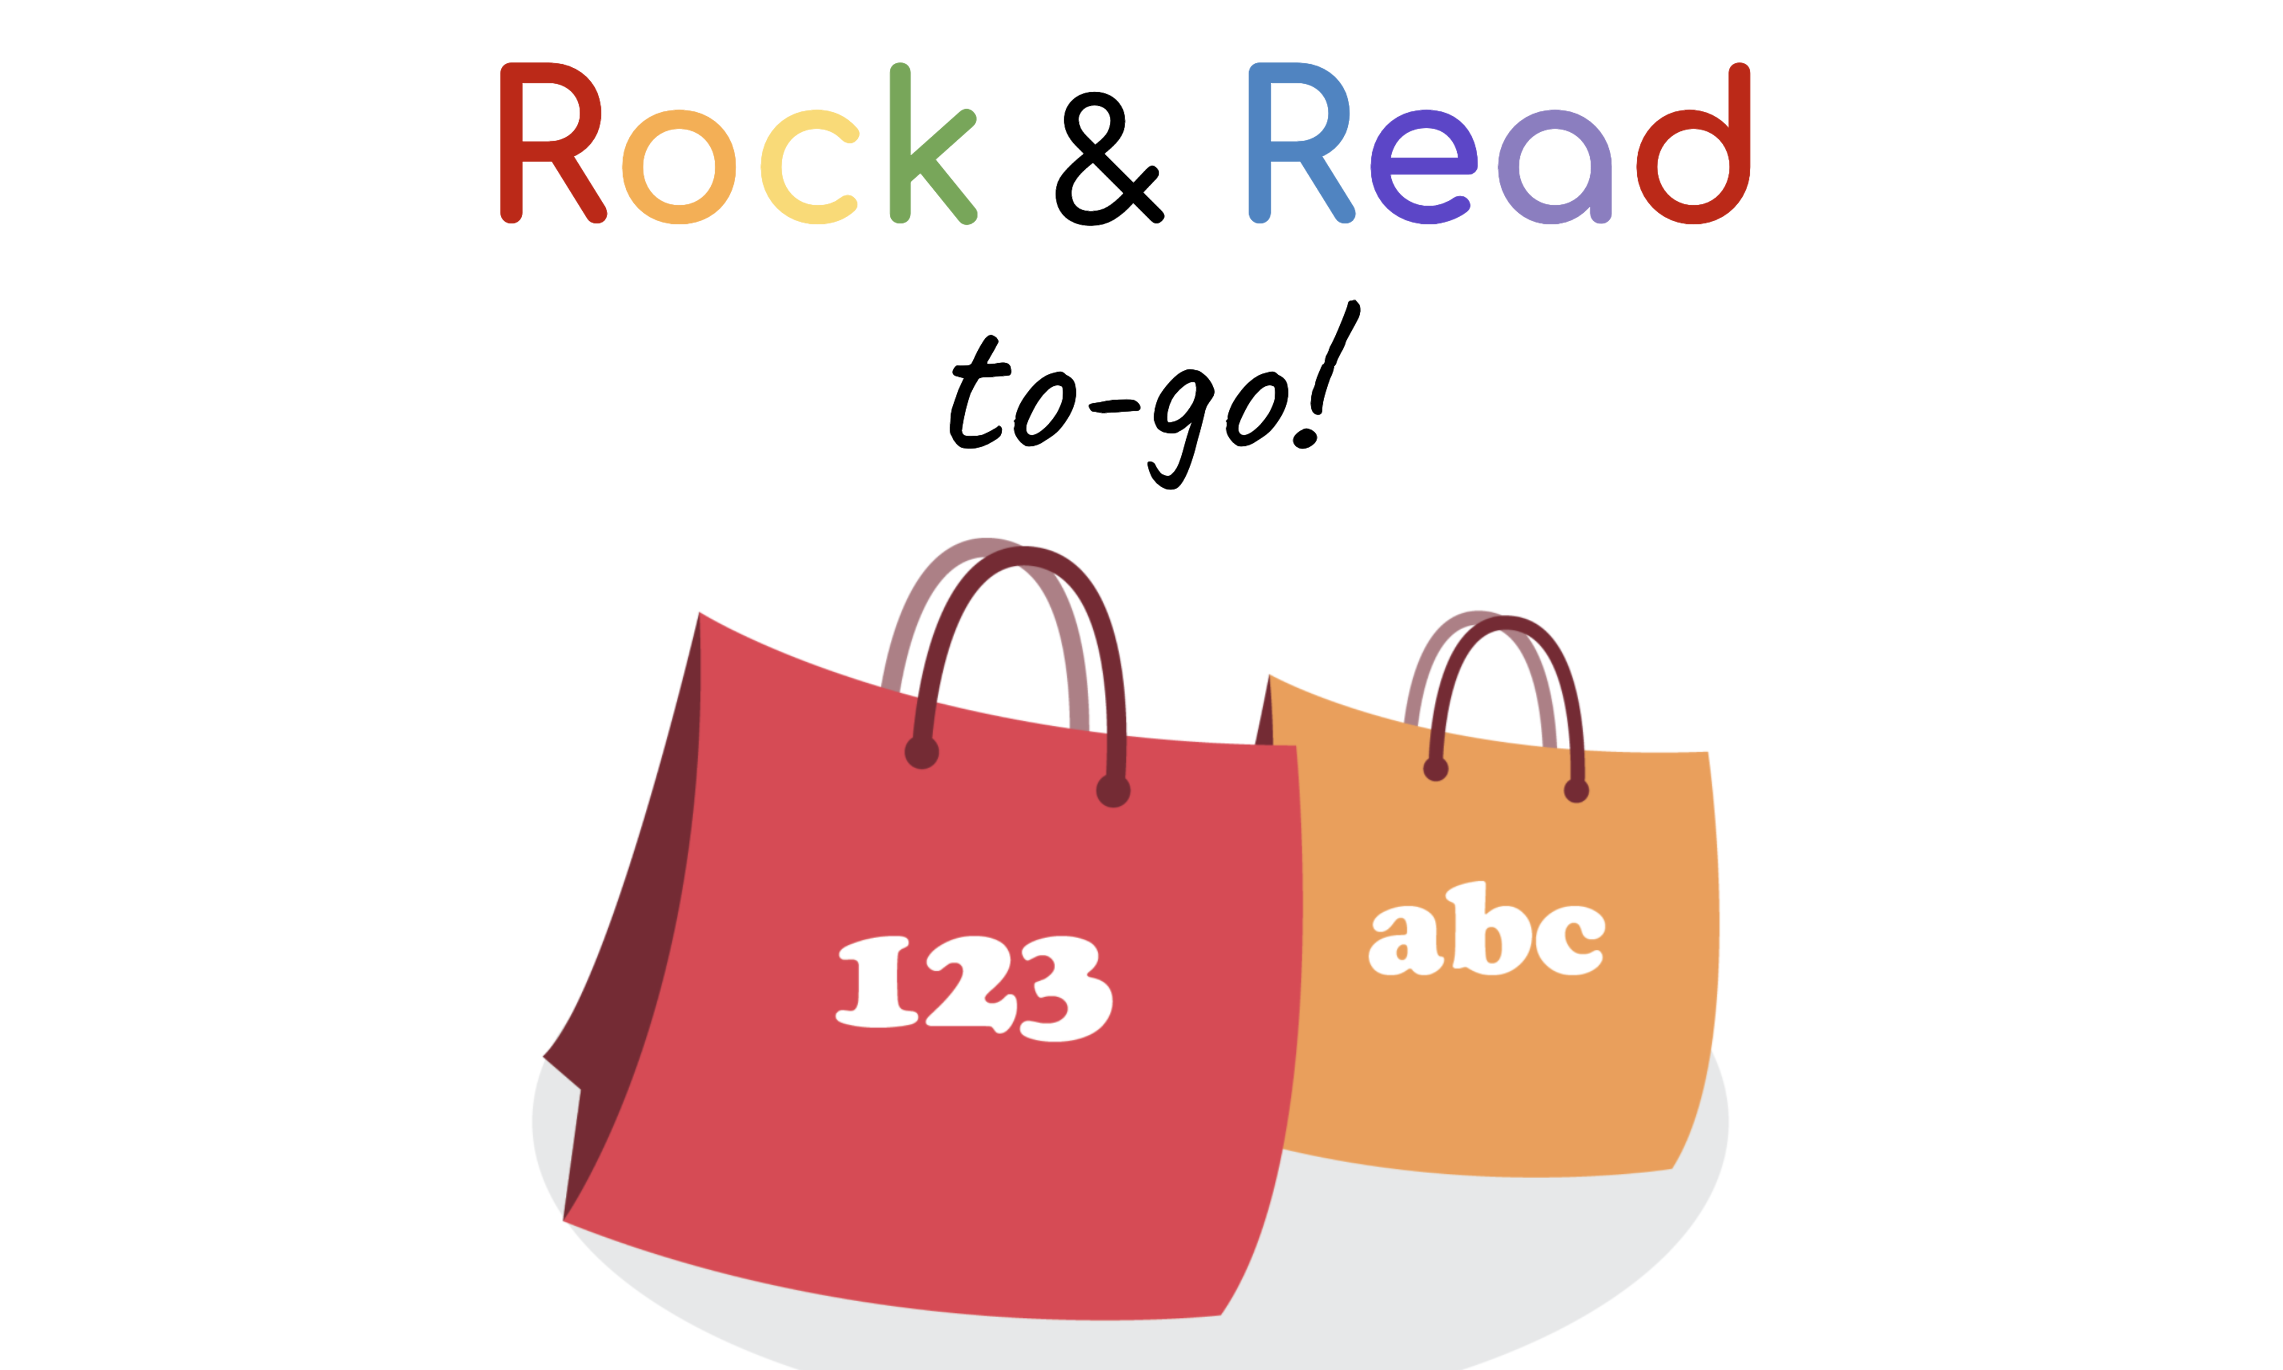 Rock & Read to-go!